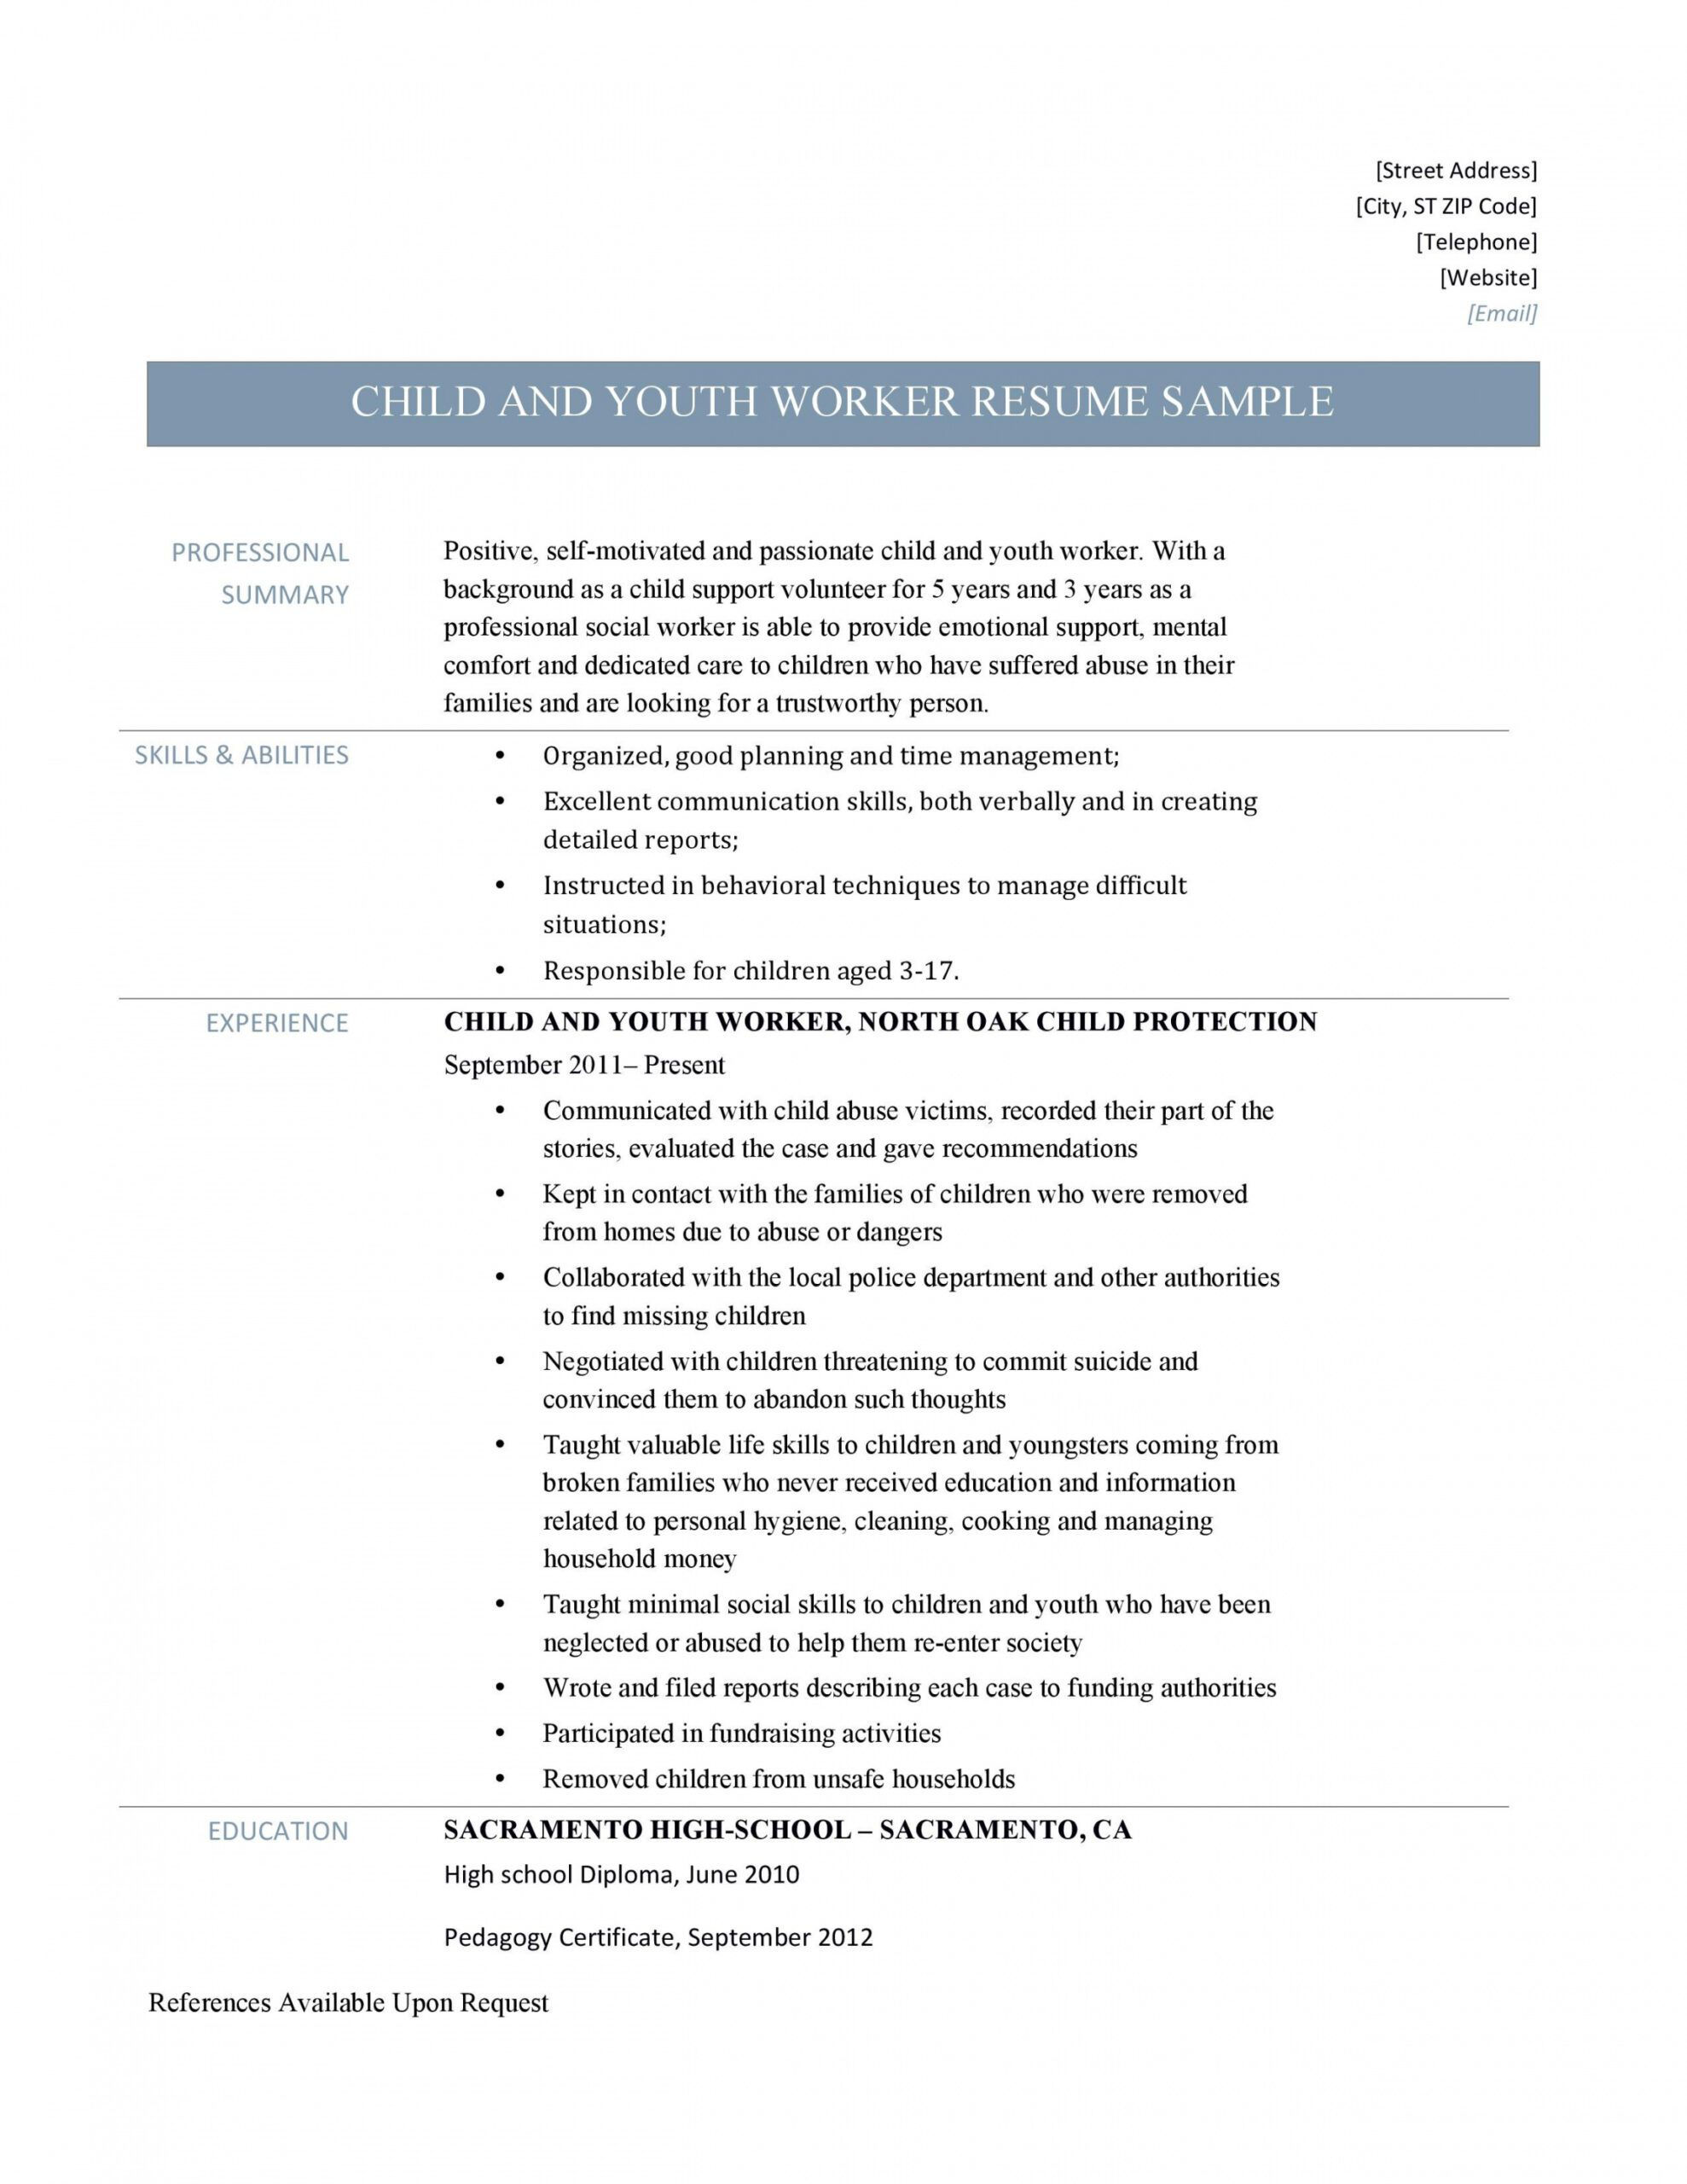 Youth Worker Job Description Template Pdf